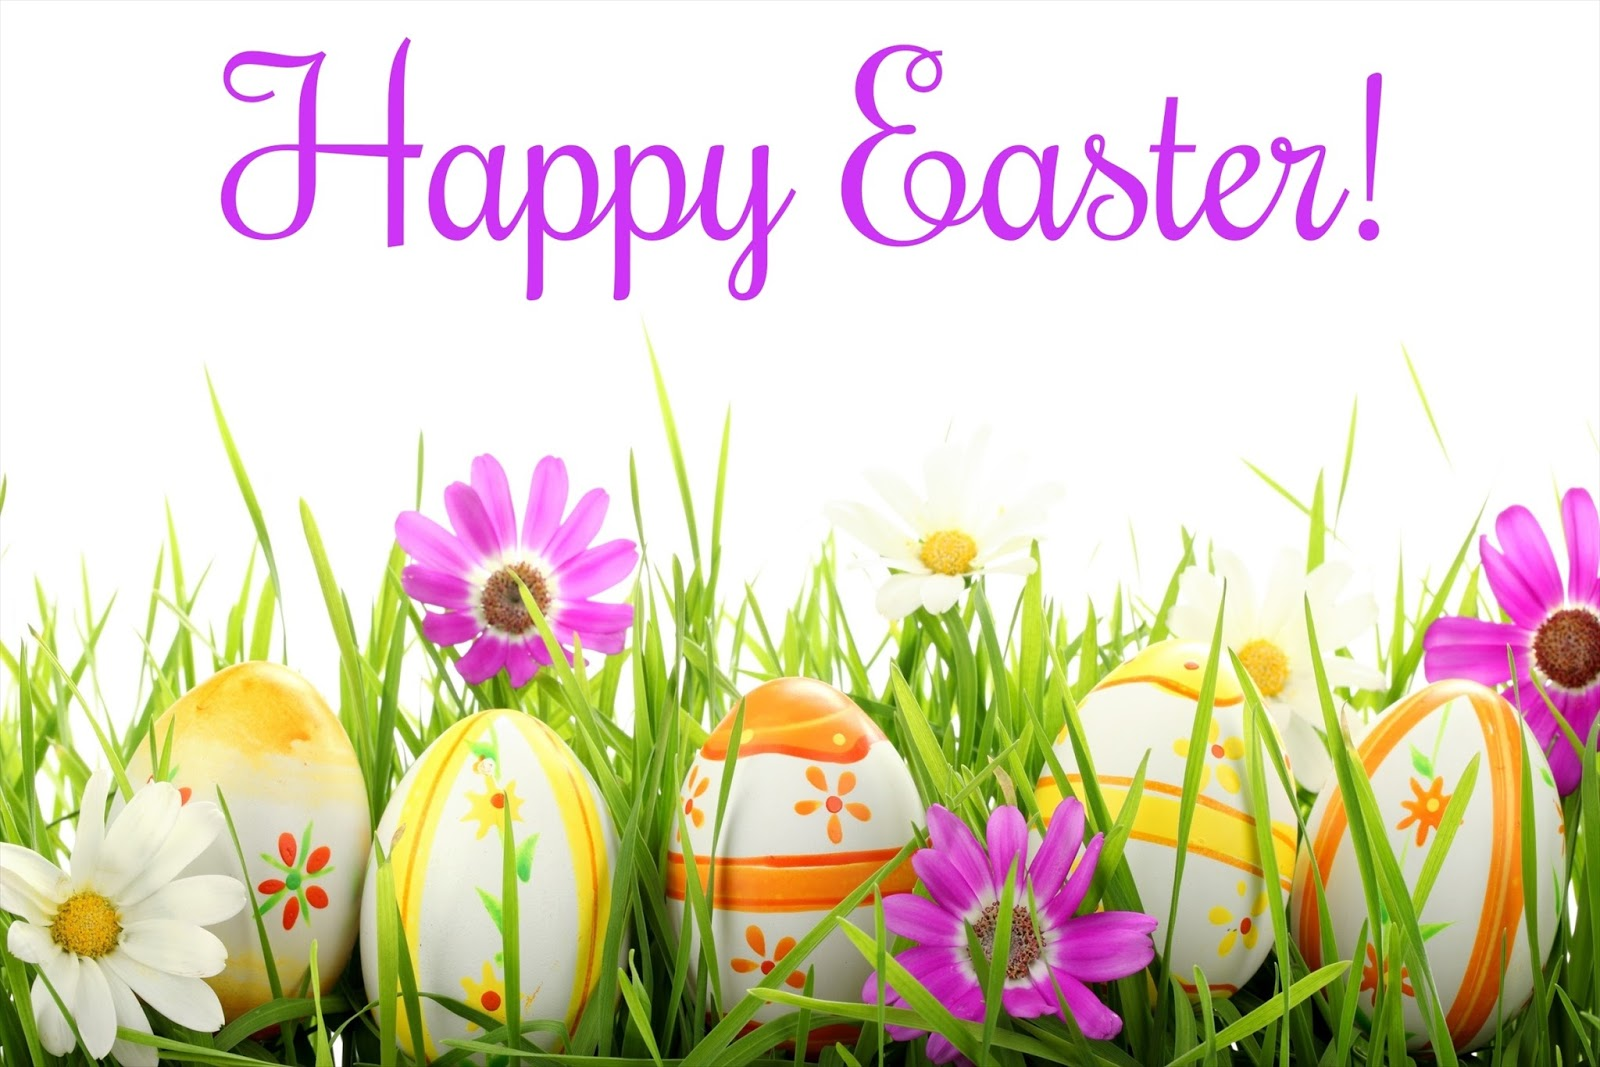 Easter Greetings Cards Easter Card Messages Easter Greetings – Easter Greeting Card Messages